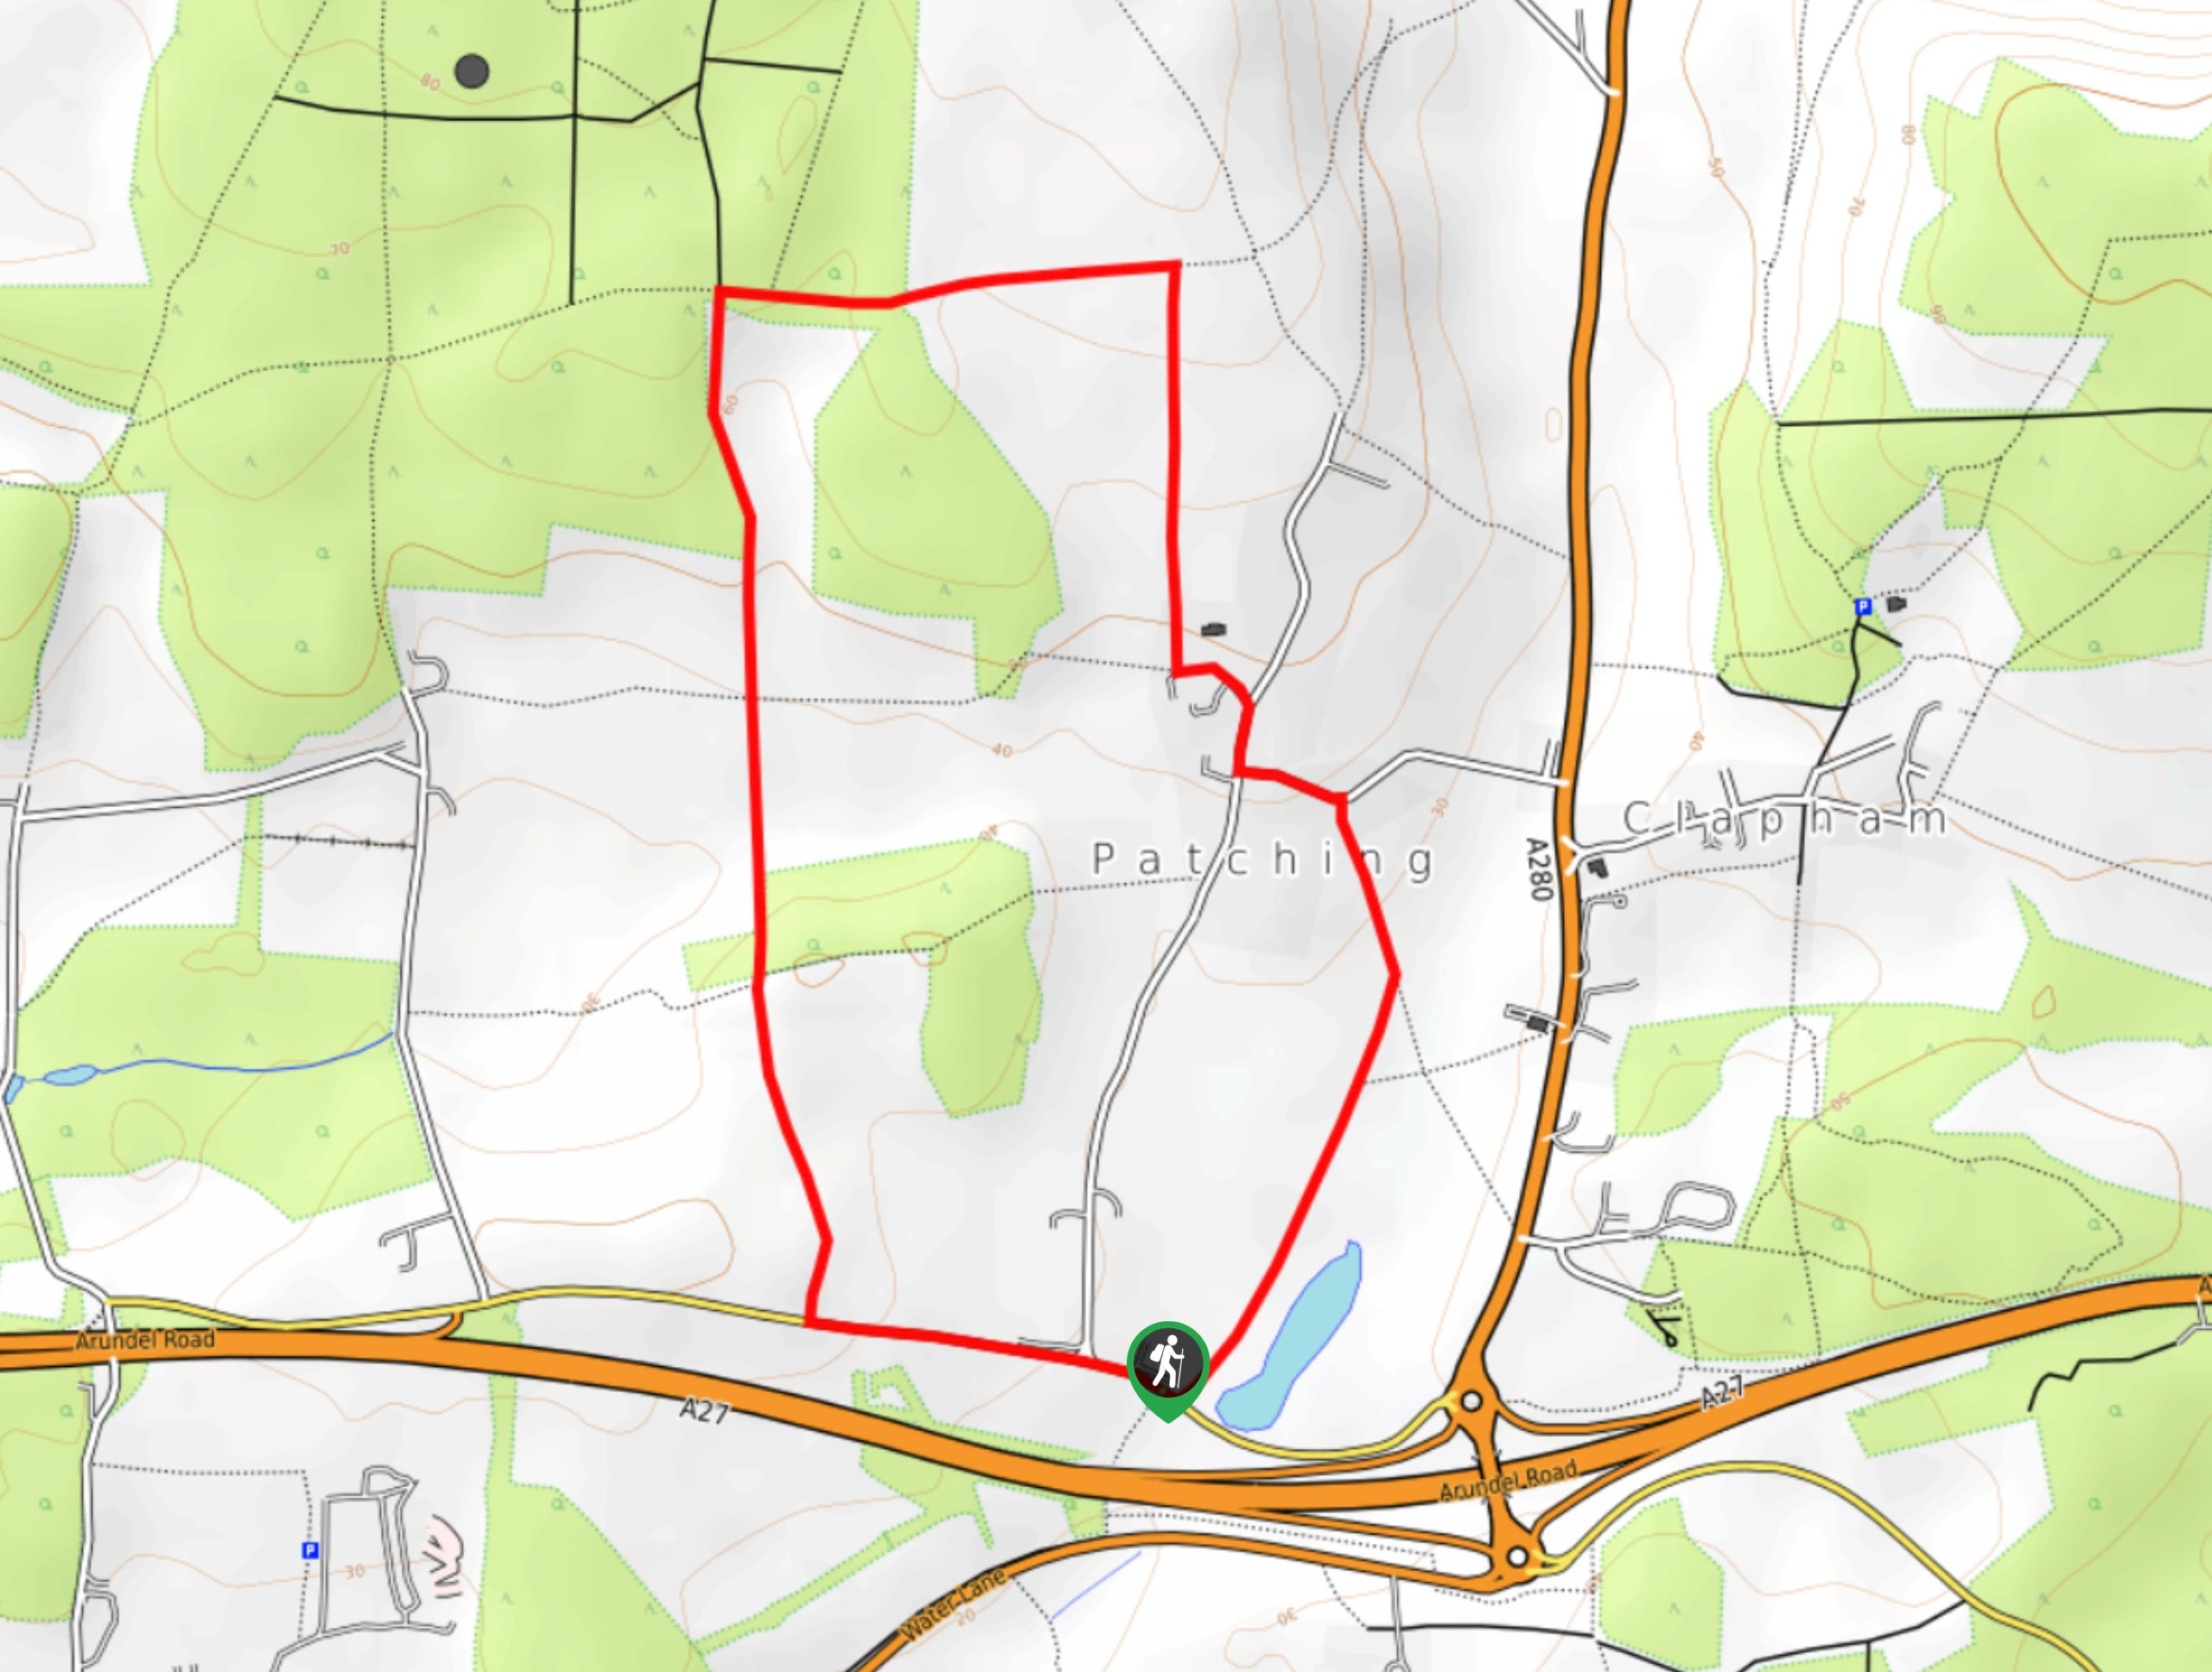 Worlds End and Patching Circular Walk Map